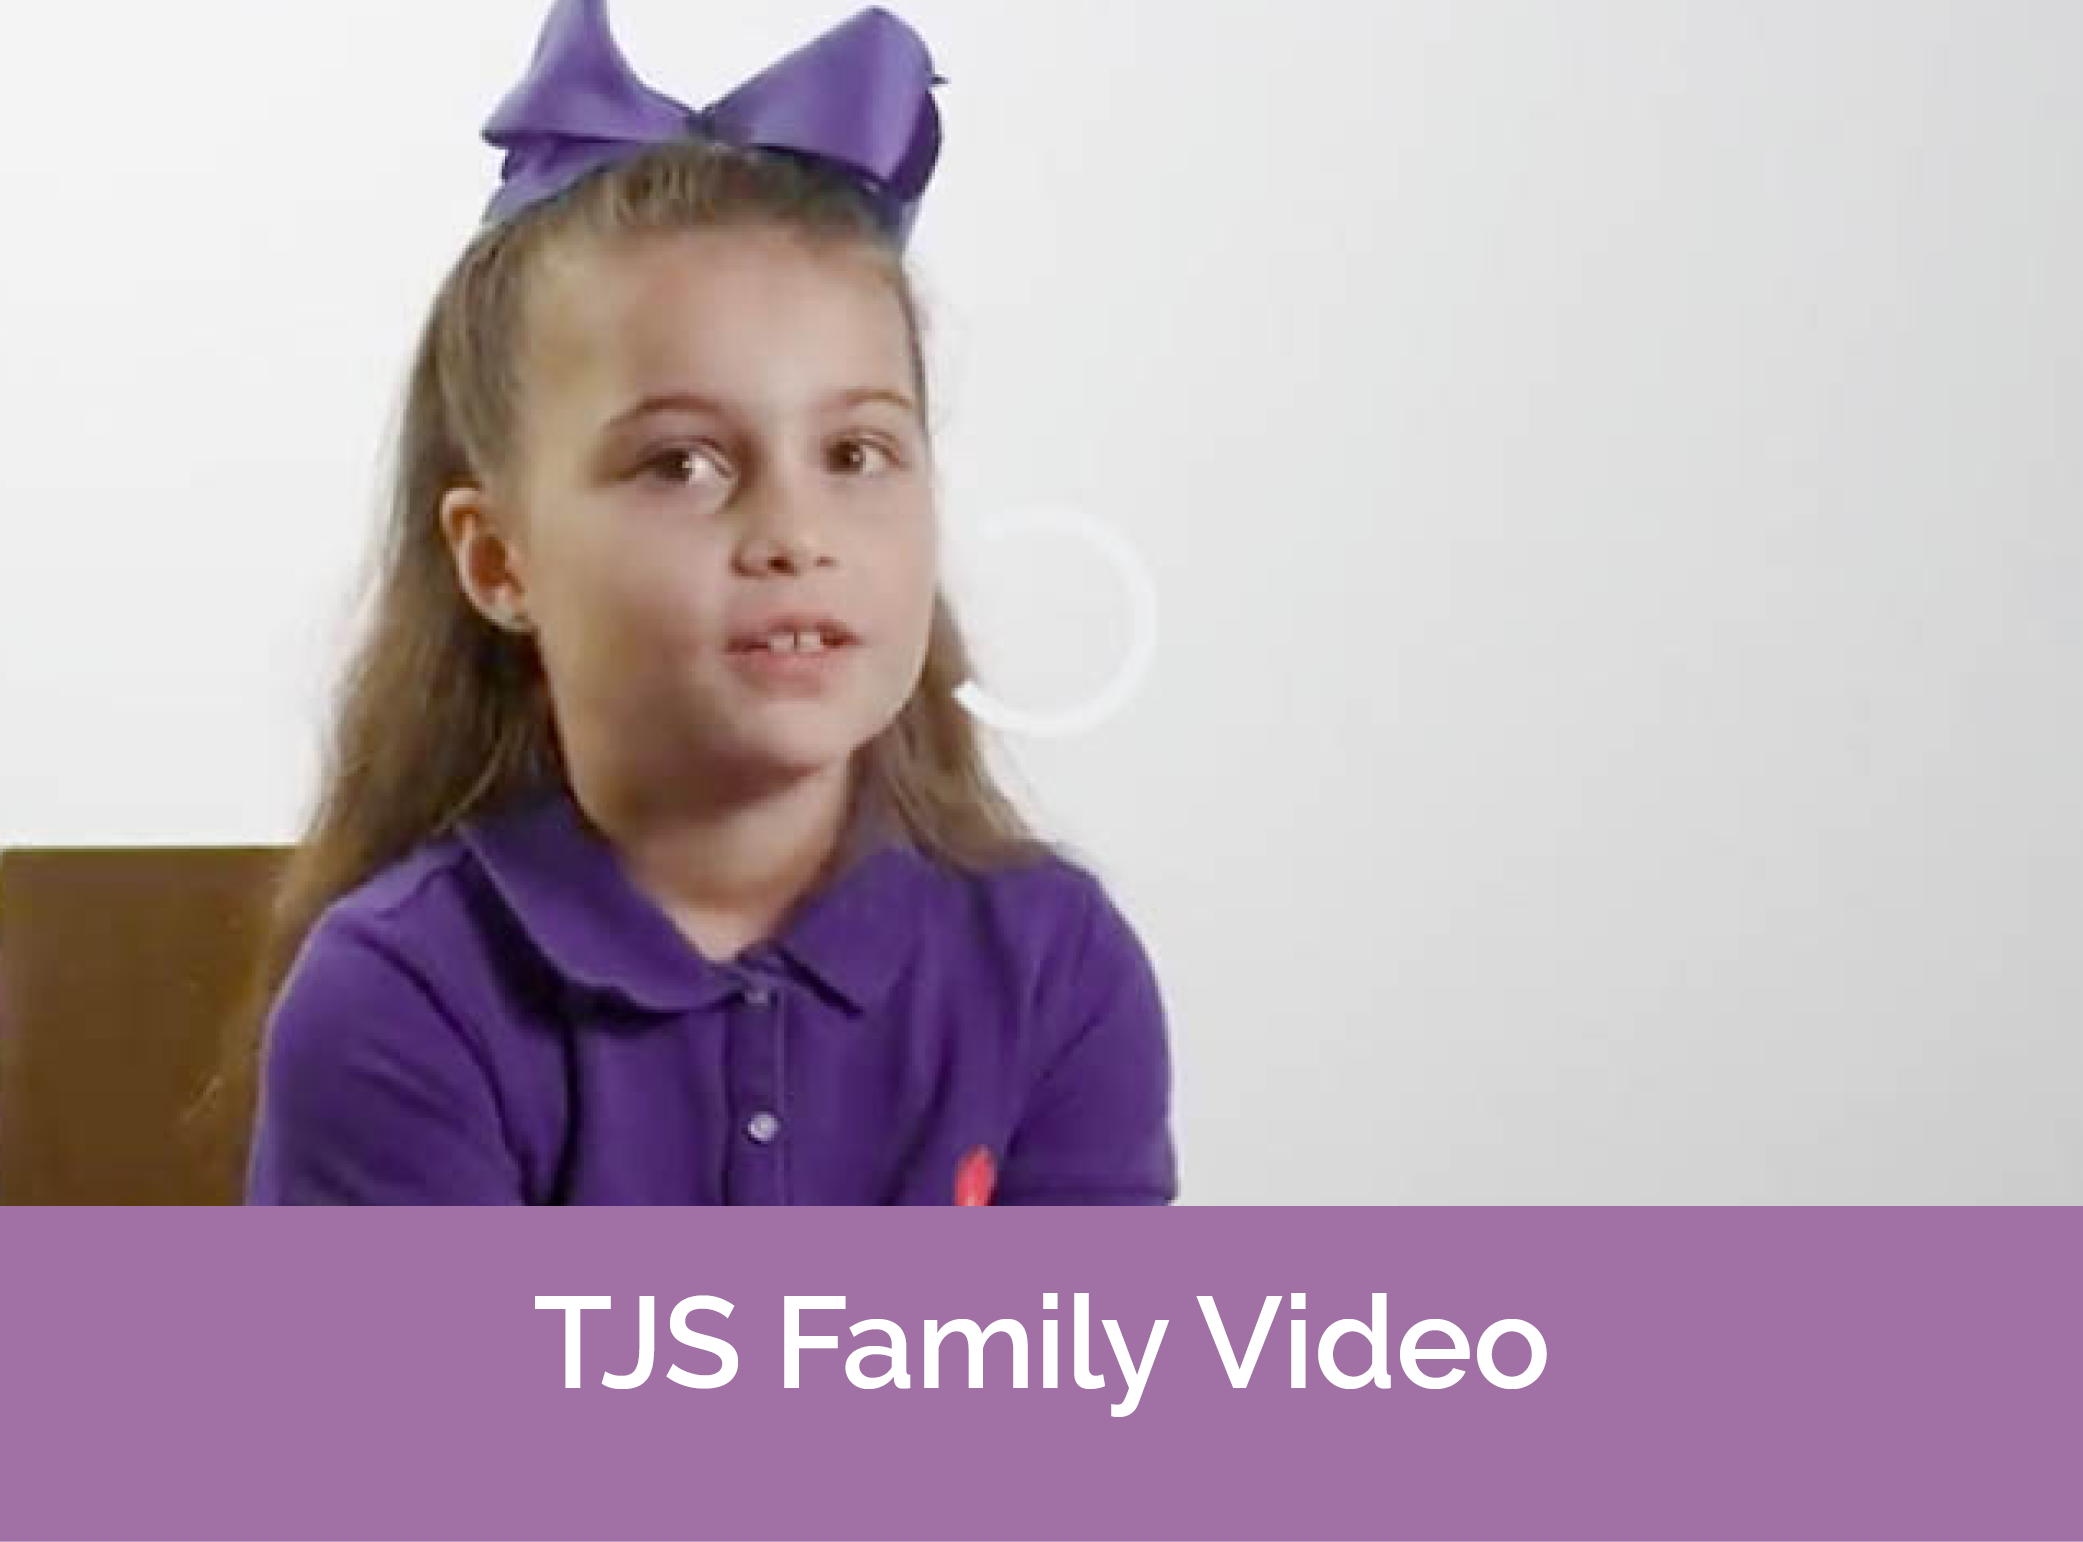 TJS Family Video